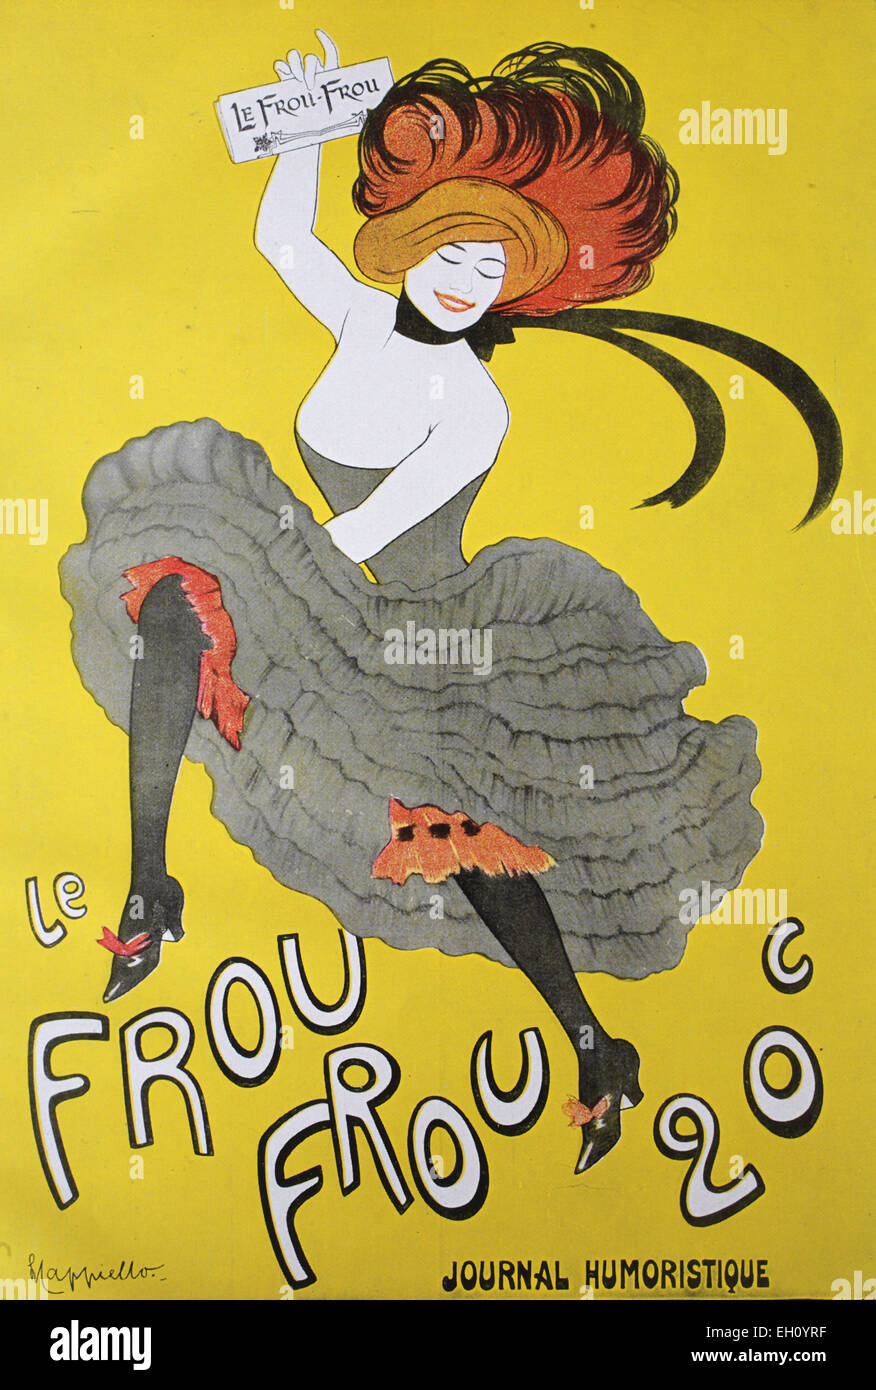 'Historic advertising poster for the French newspaper ''Frou - Frou'' by Capiello, circa 1880' - Stock Image